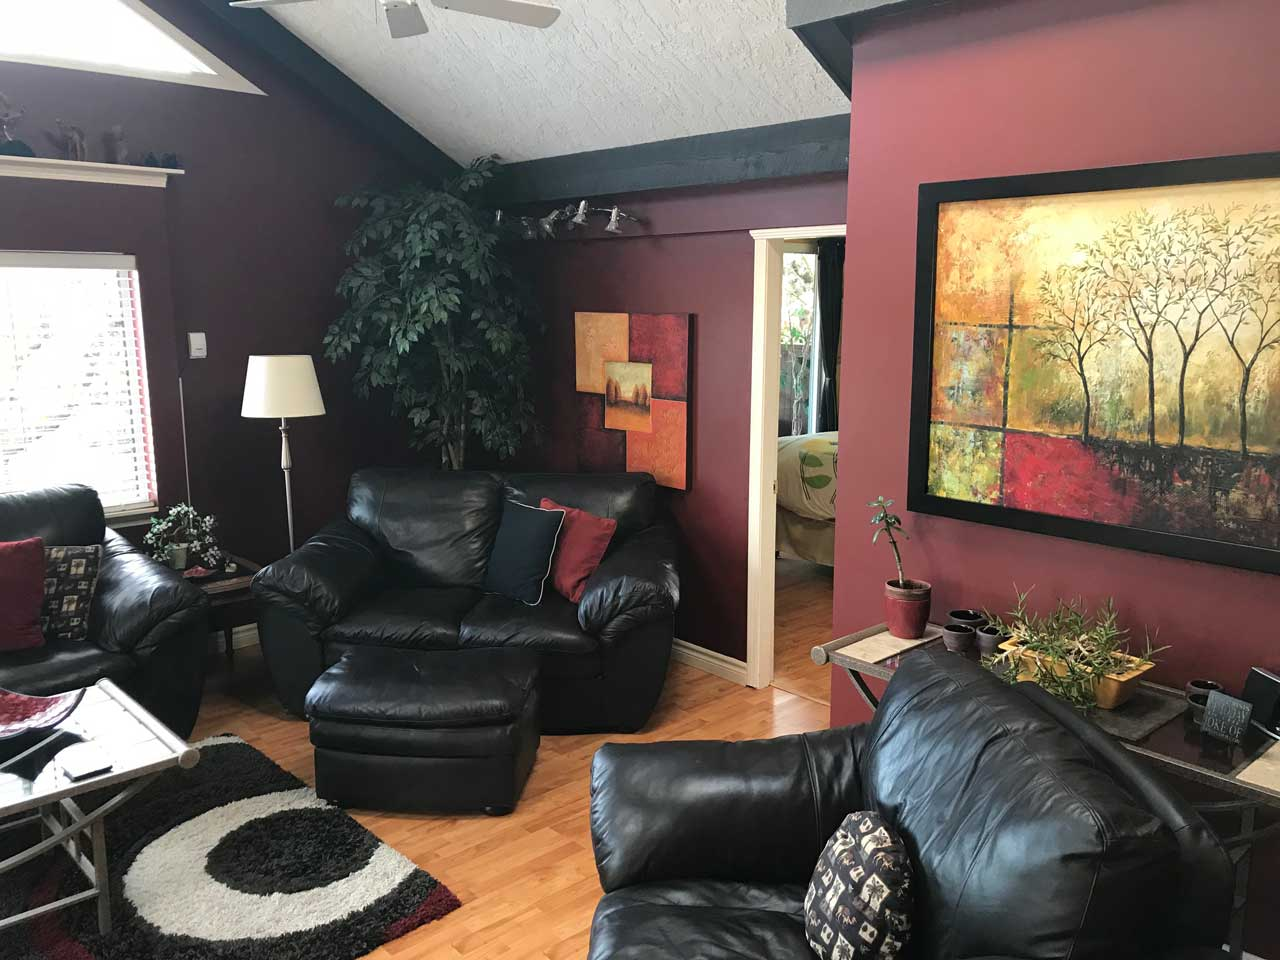 Garden Paradise living room leather couches and colorful art